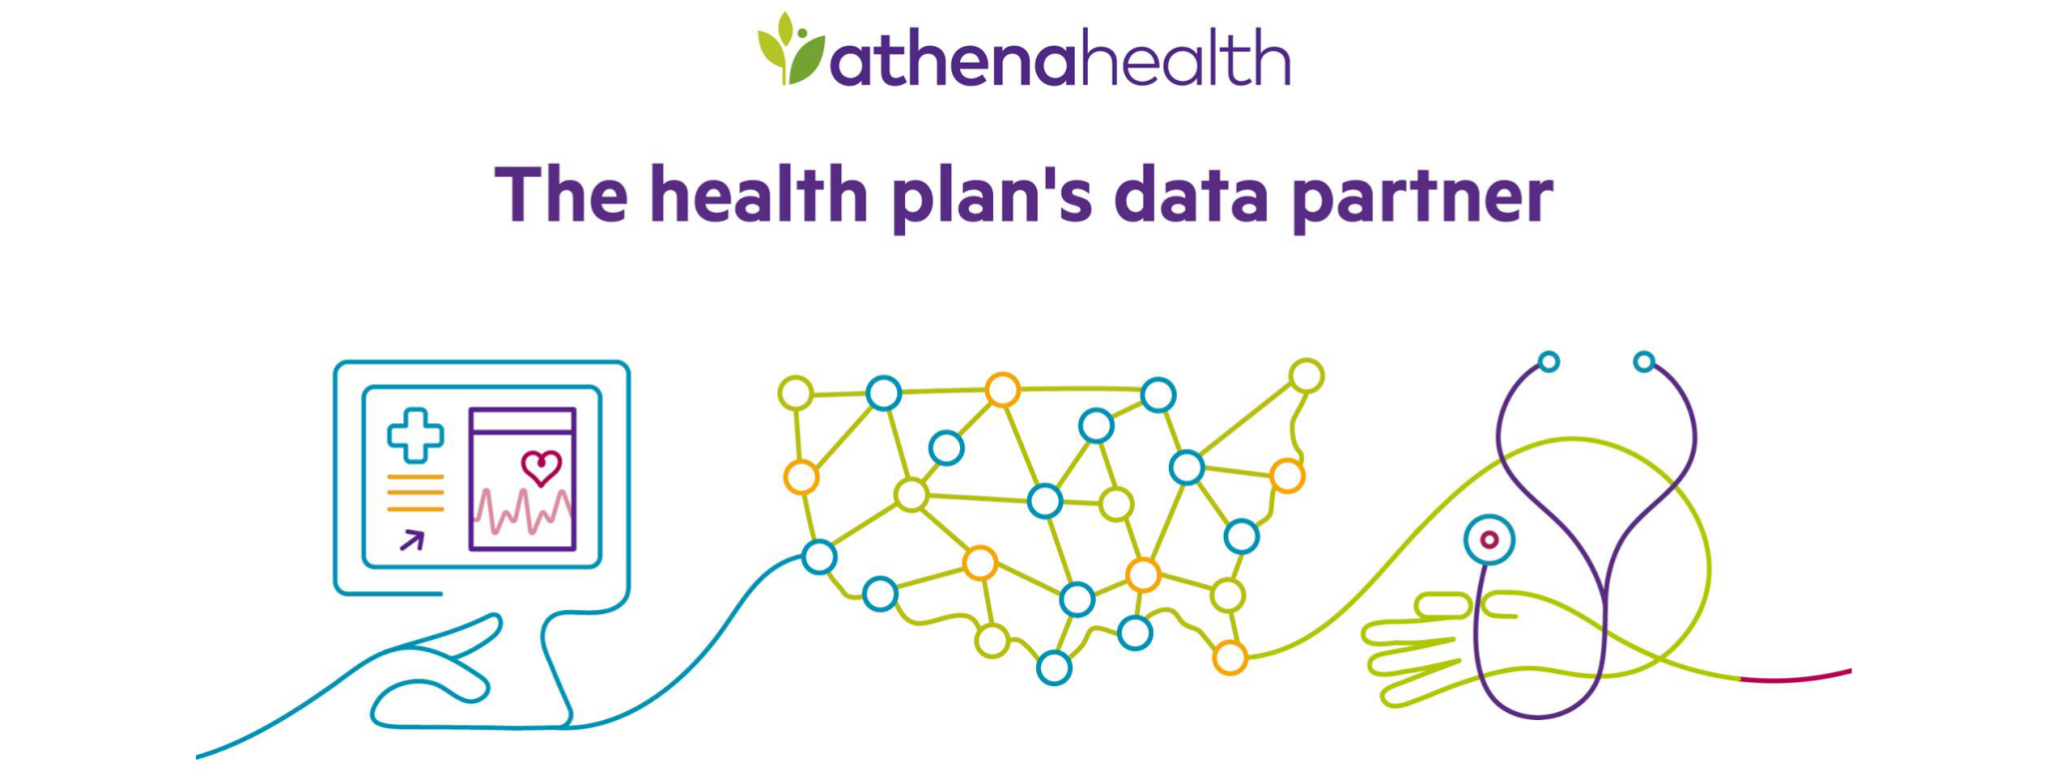 custom image of athena health plan- including an image of a computer, stethoscope and and interconnected US map indicating their connection